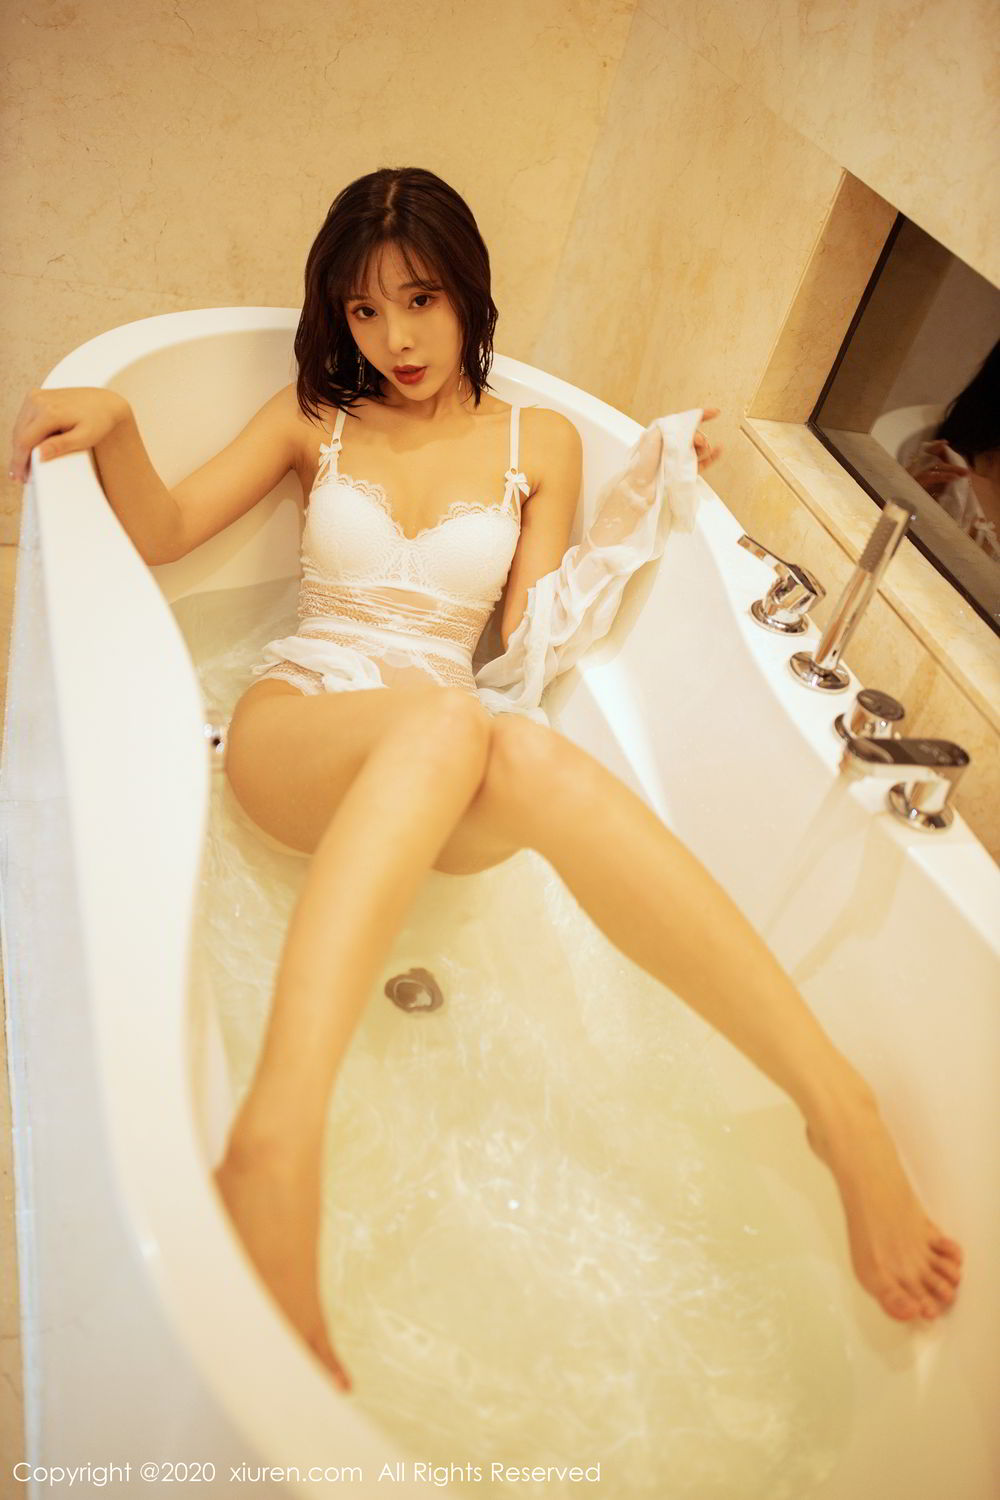 [XiuRen] Vol.2158 Chen Xiao Miao 26P, Bathroom, Chen Xiao Miao, Tall, Wet, Xiuren